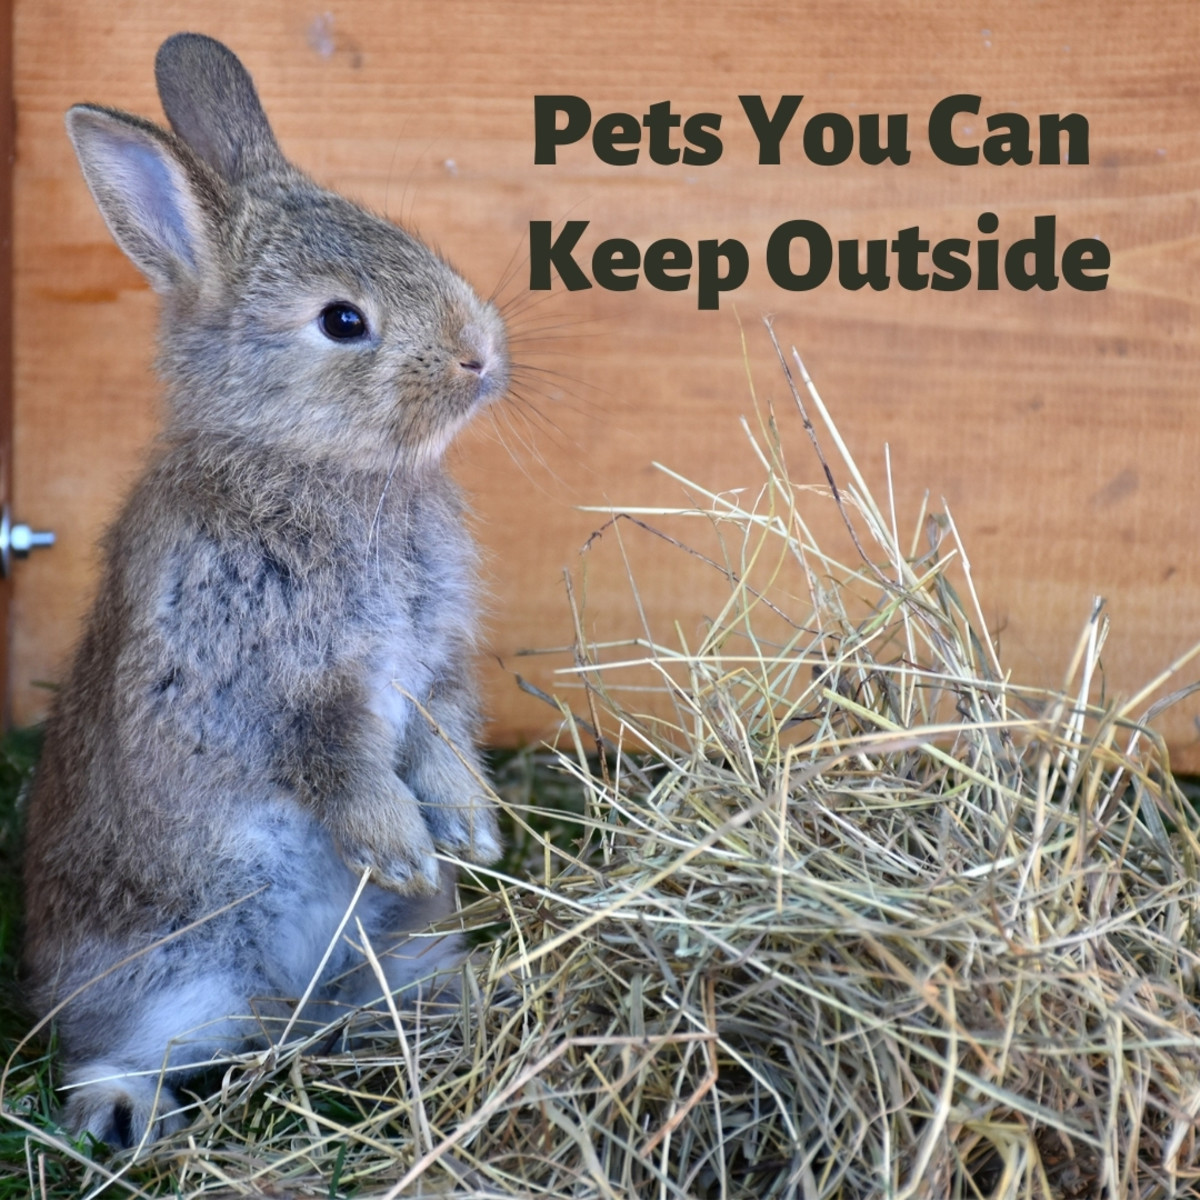 There are plenty of low-maintenance pets that can be kept outdoors—read about them here!